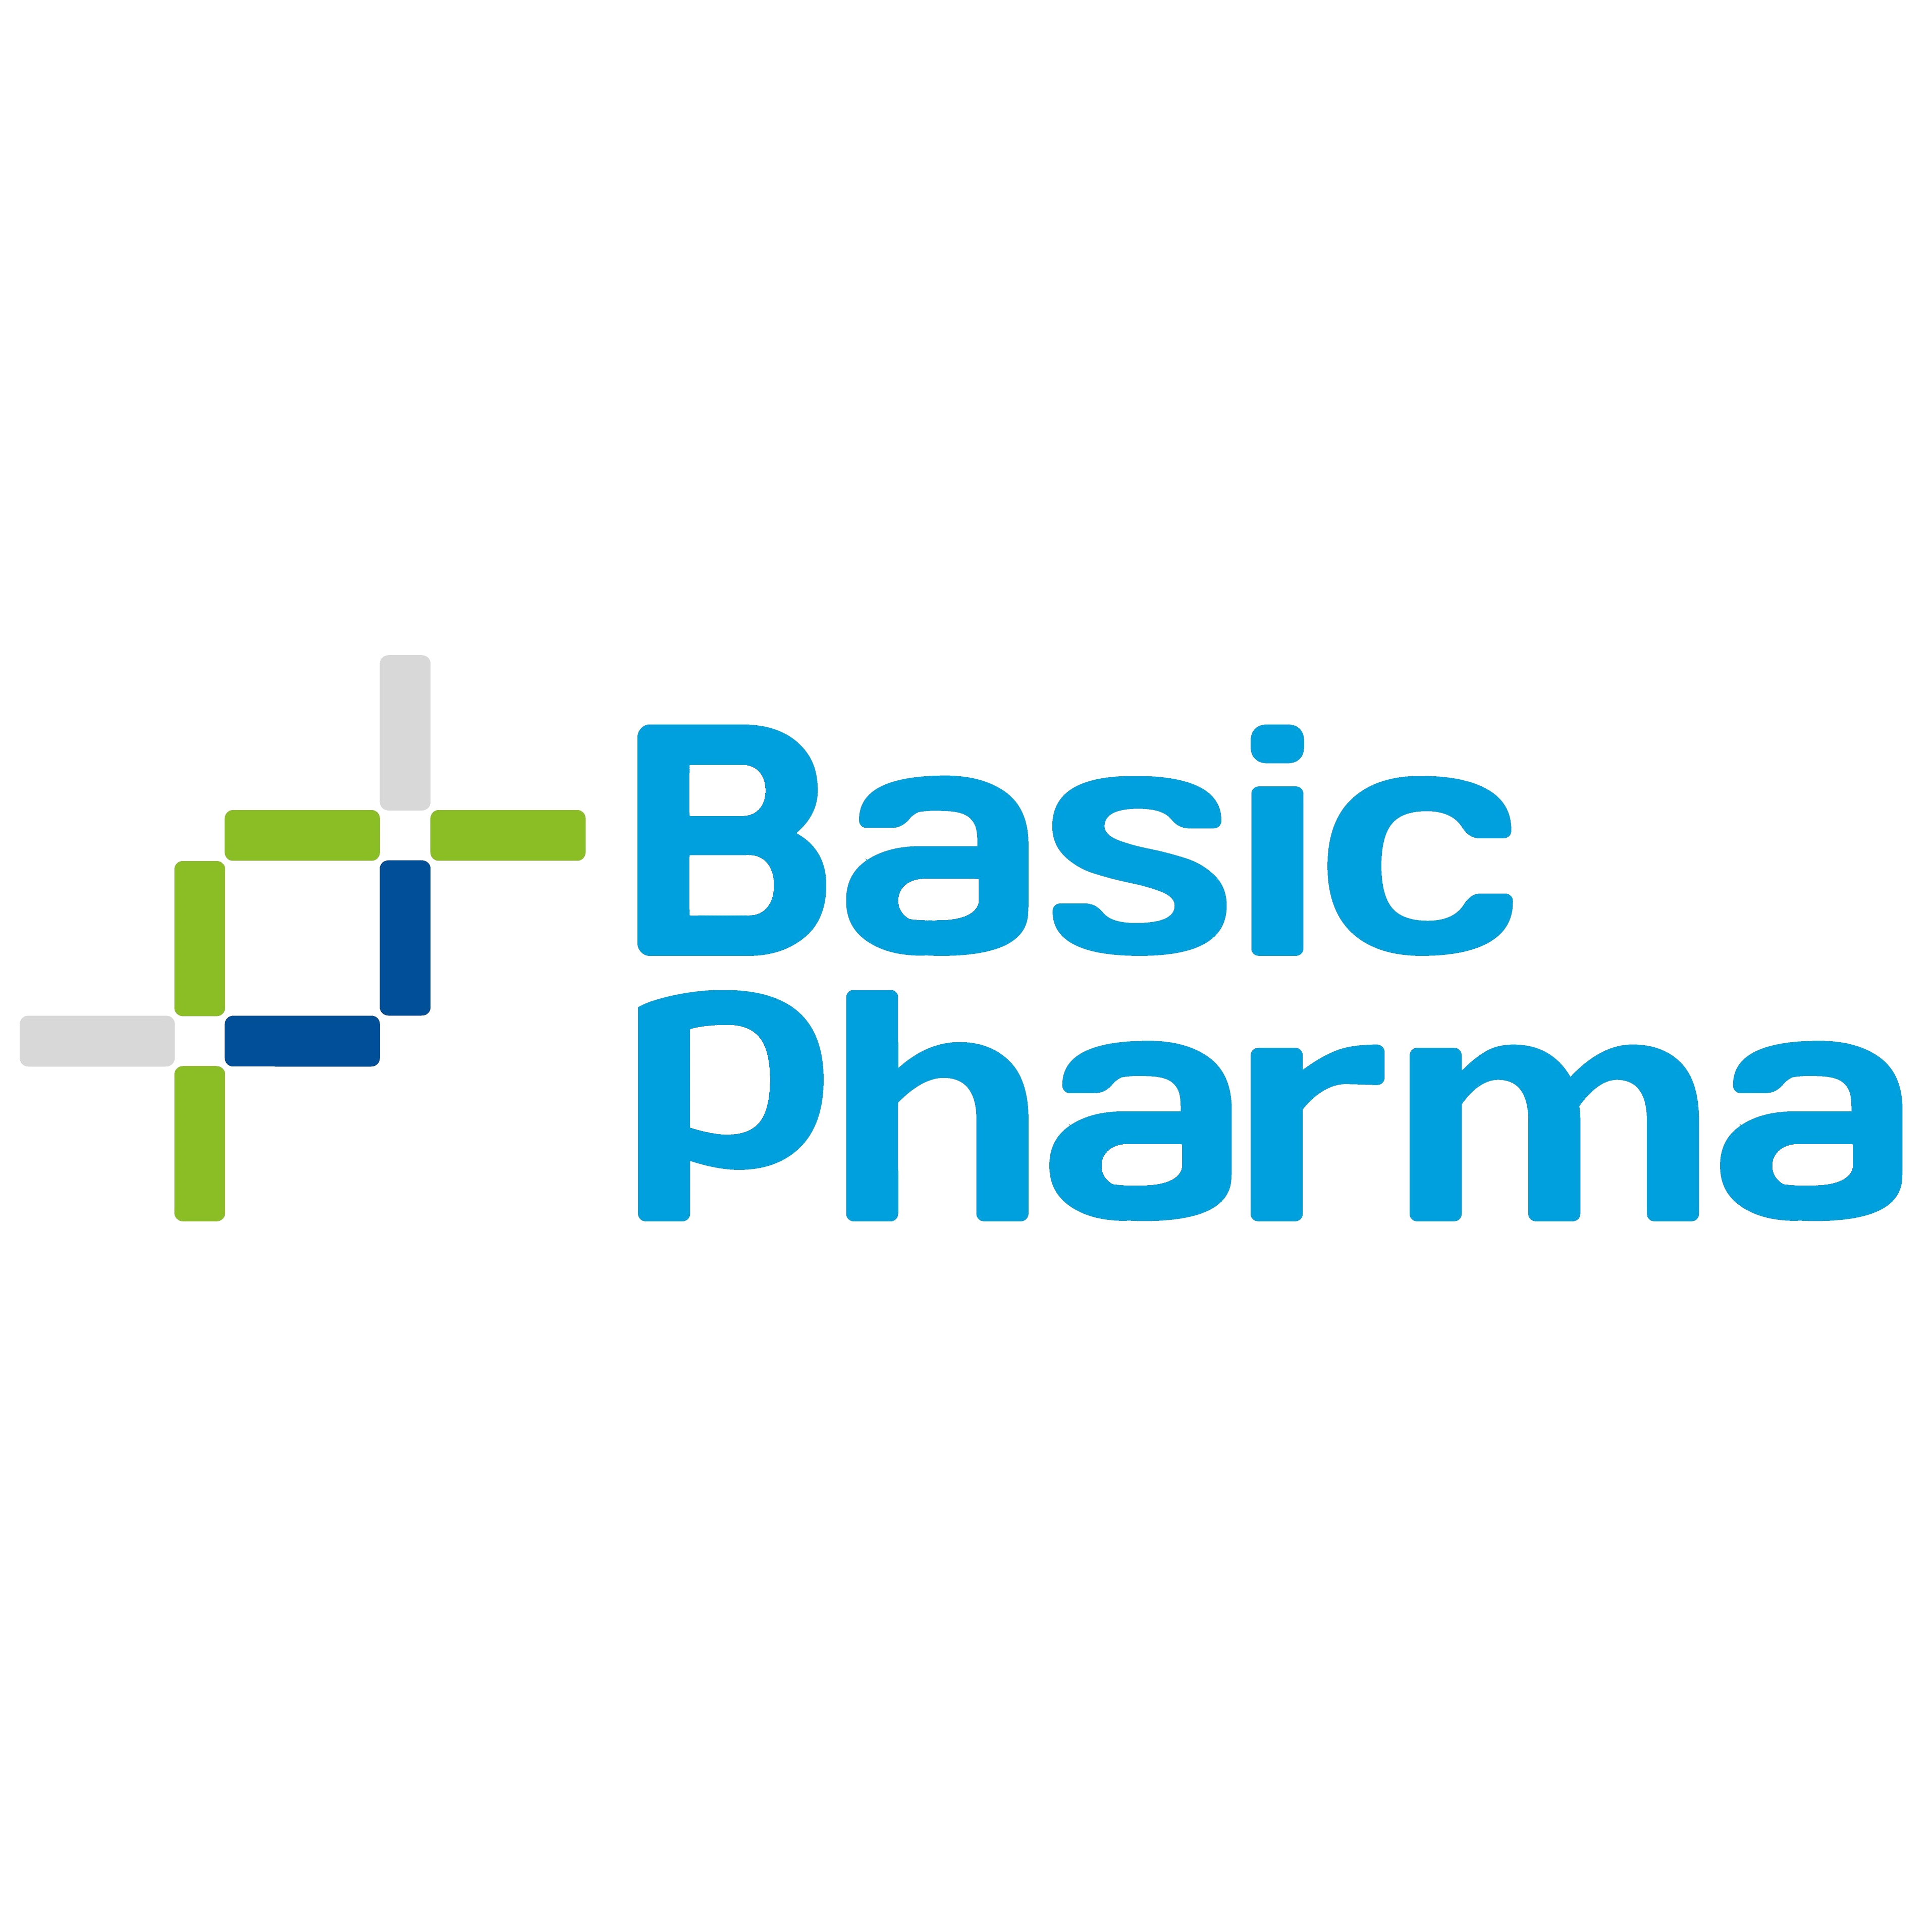 a-basicPharma-square.png